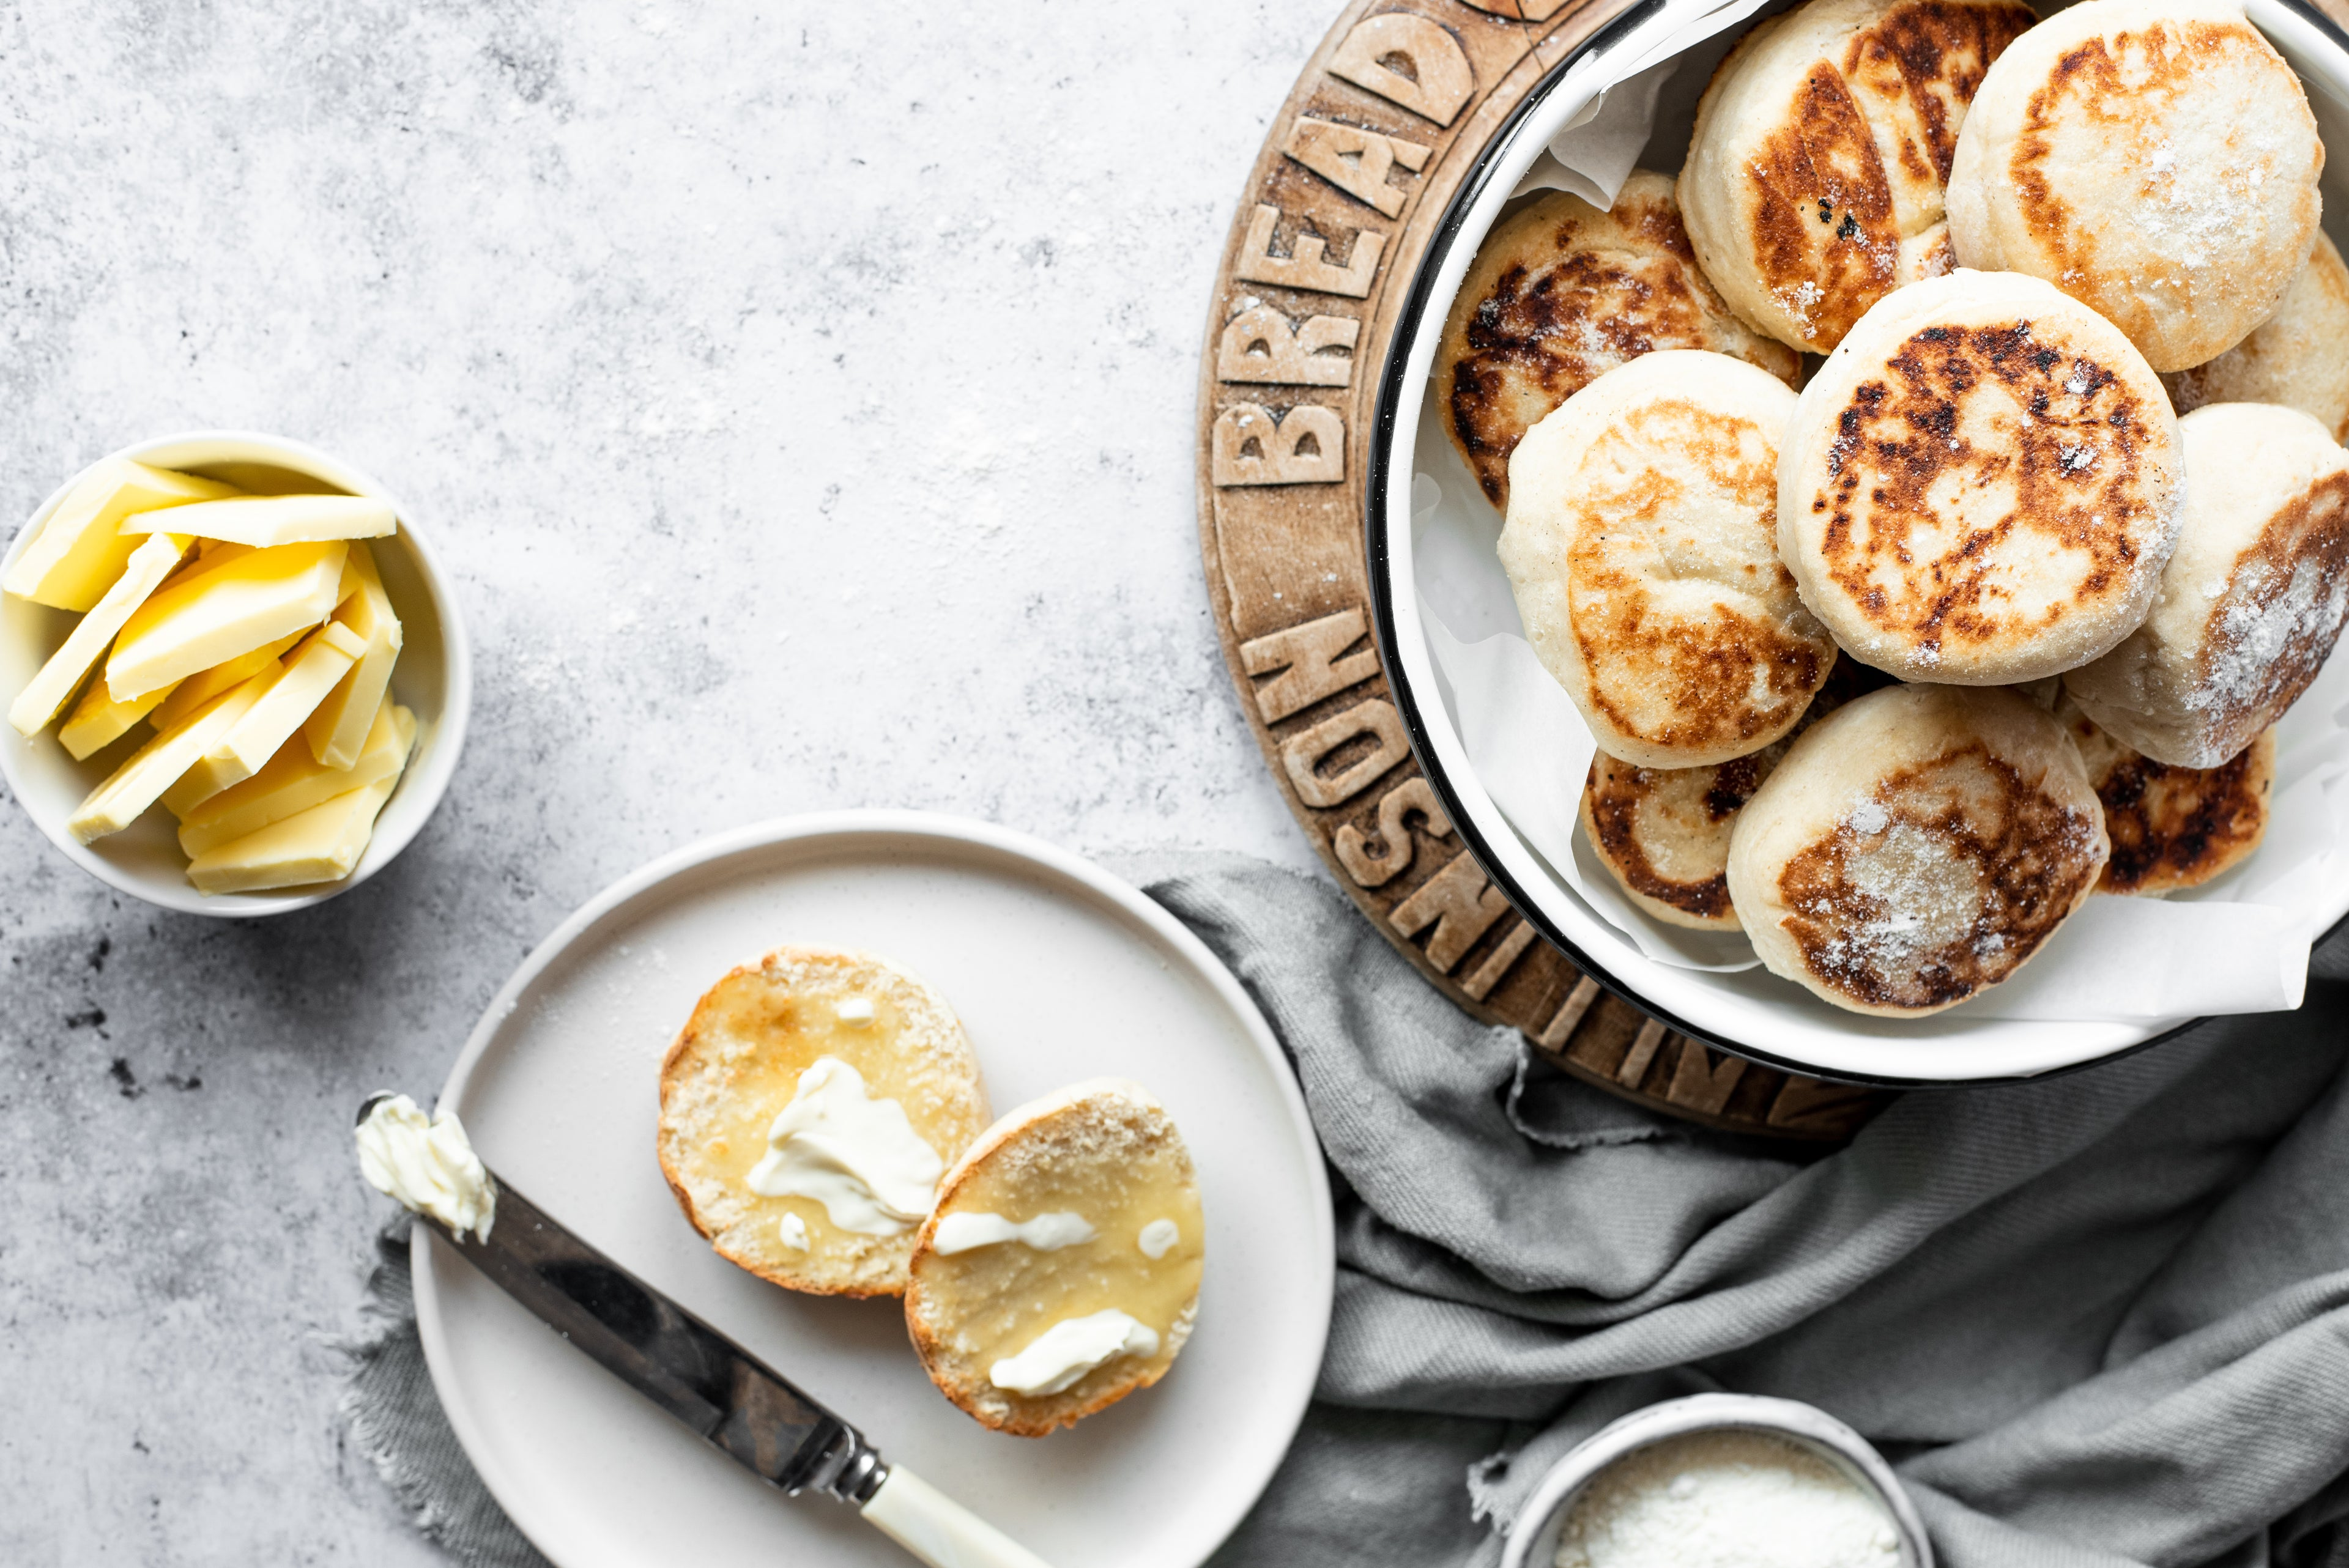 Allinsons-English-Muffins-FULL-RES-3.jpg